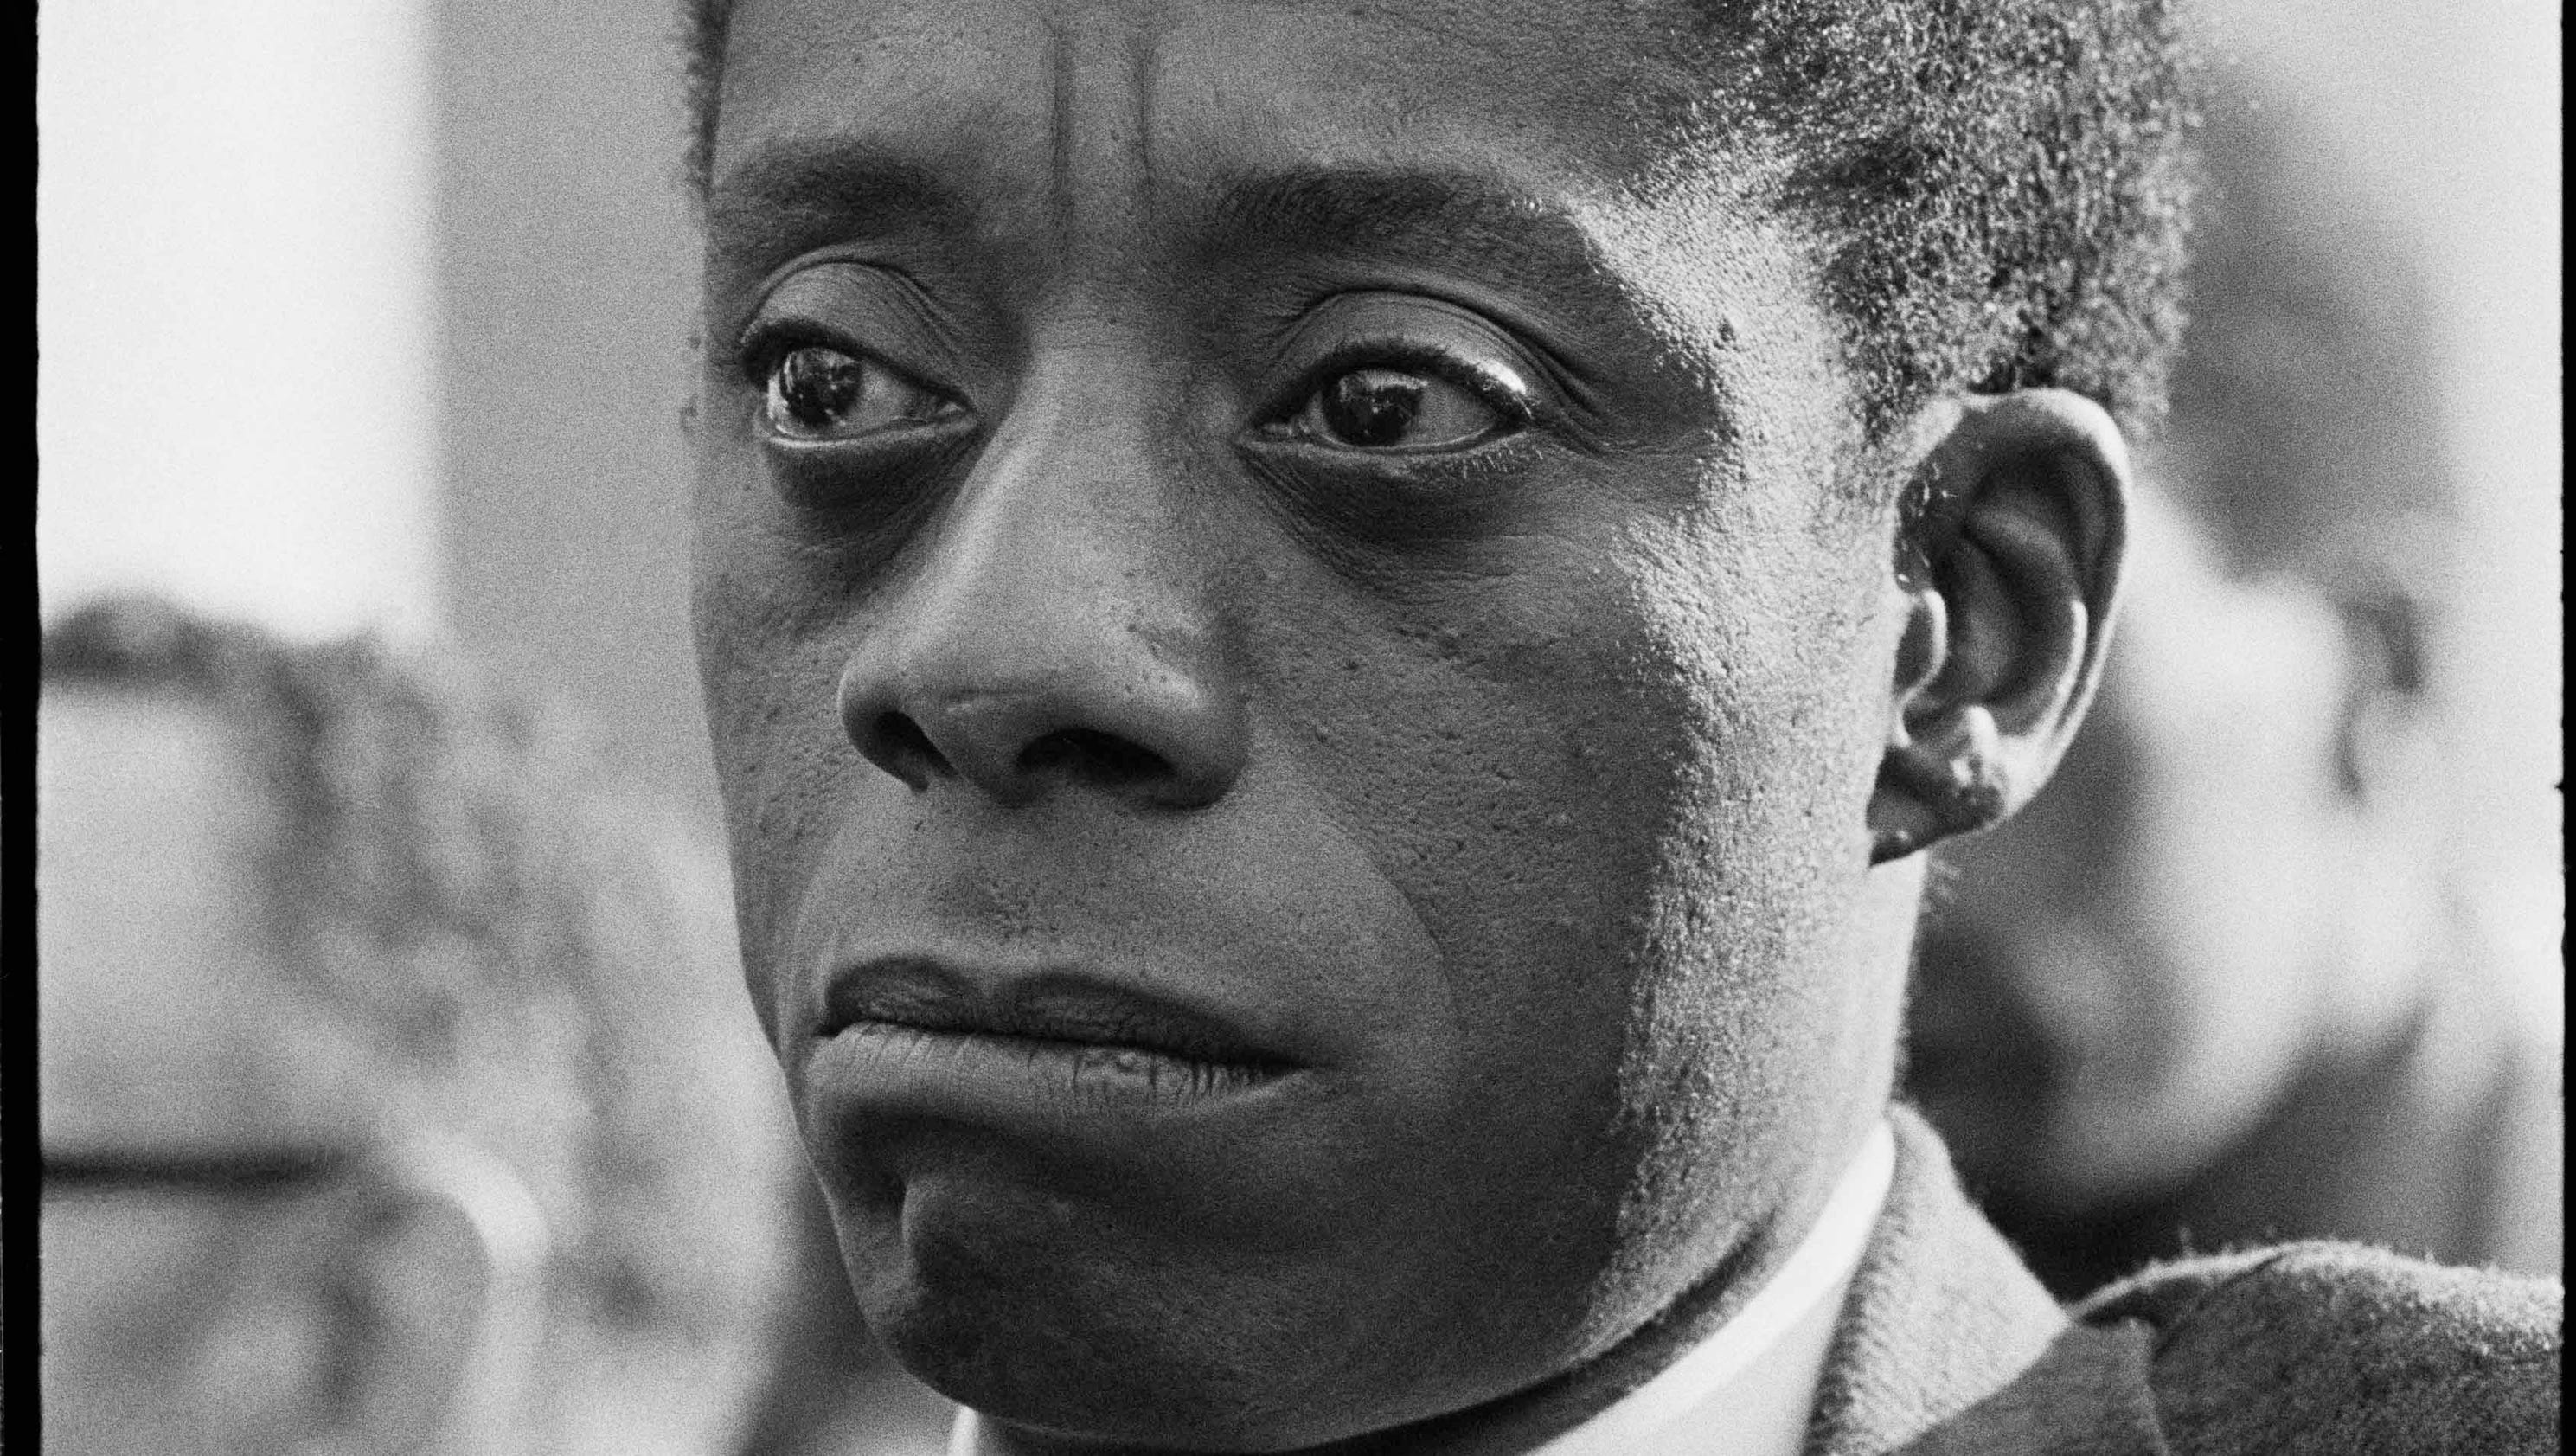 james baldwin essays online james baldwin essays online